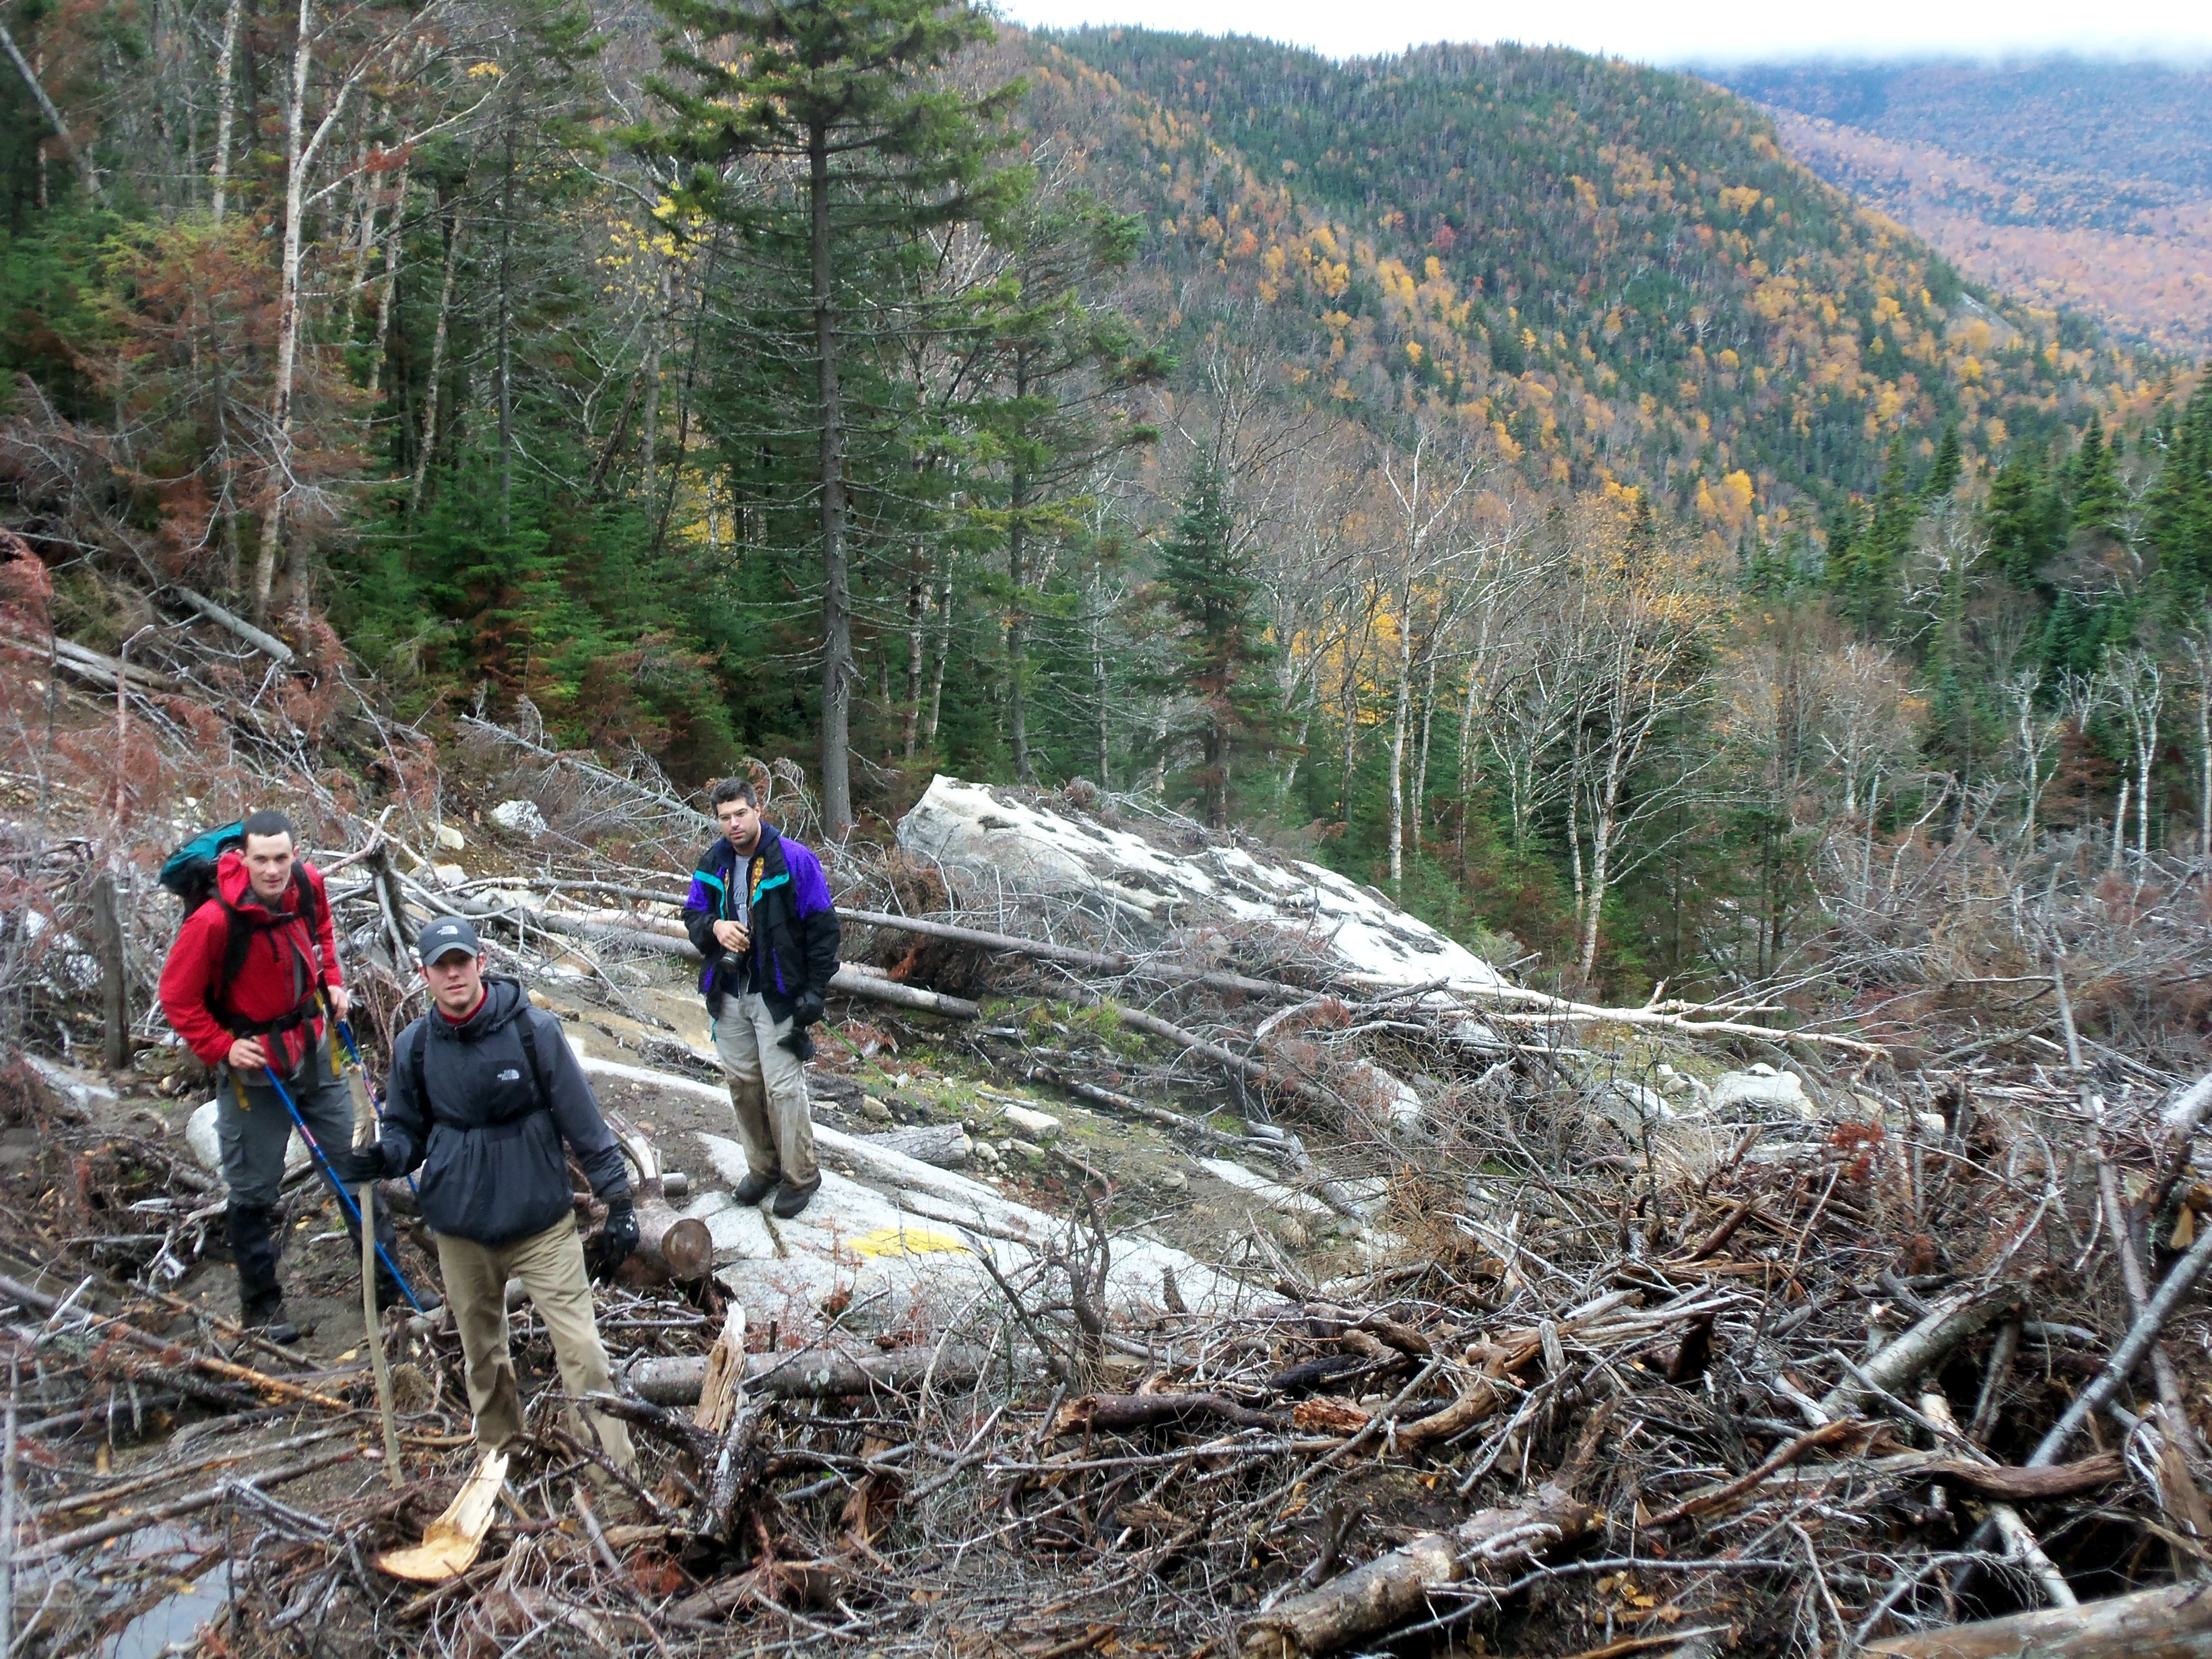 Orebed Slide, a year after Irene